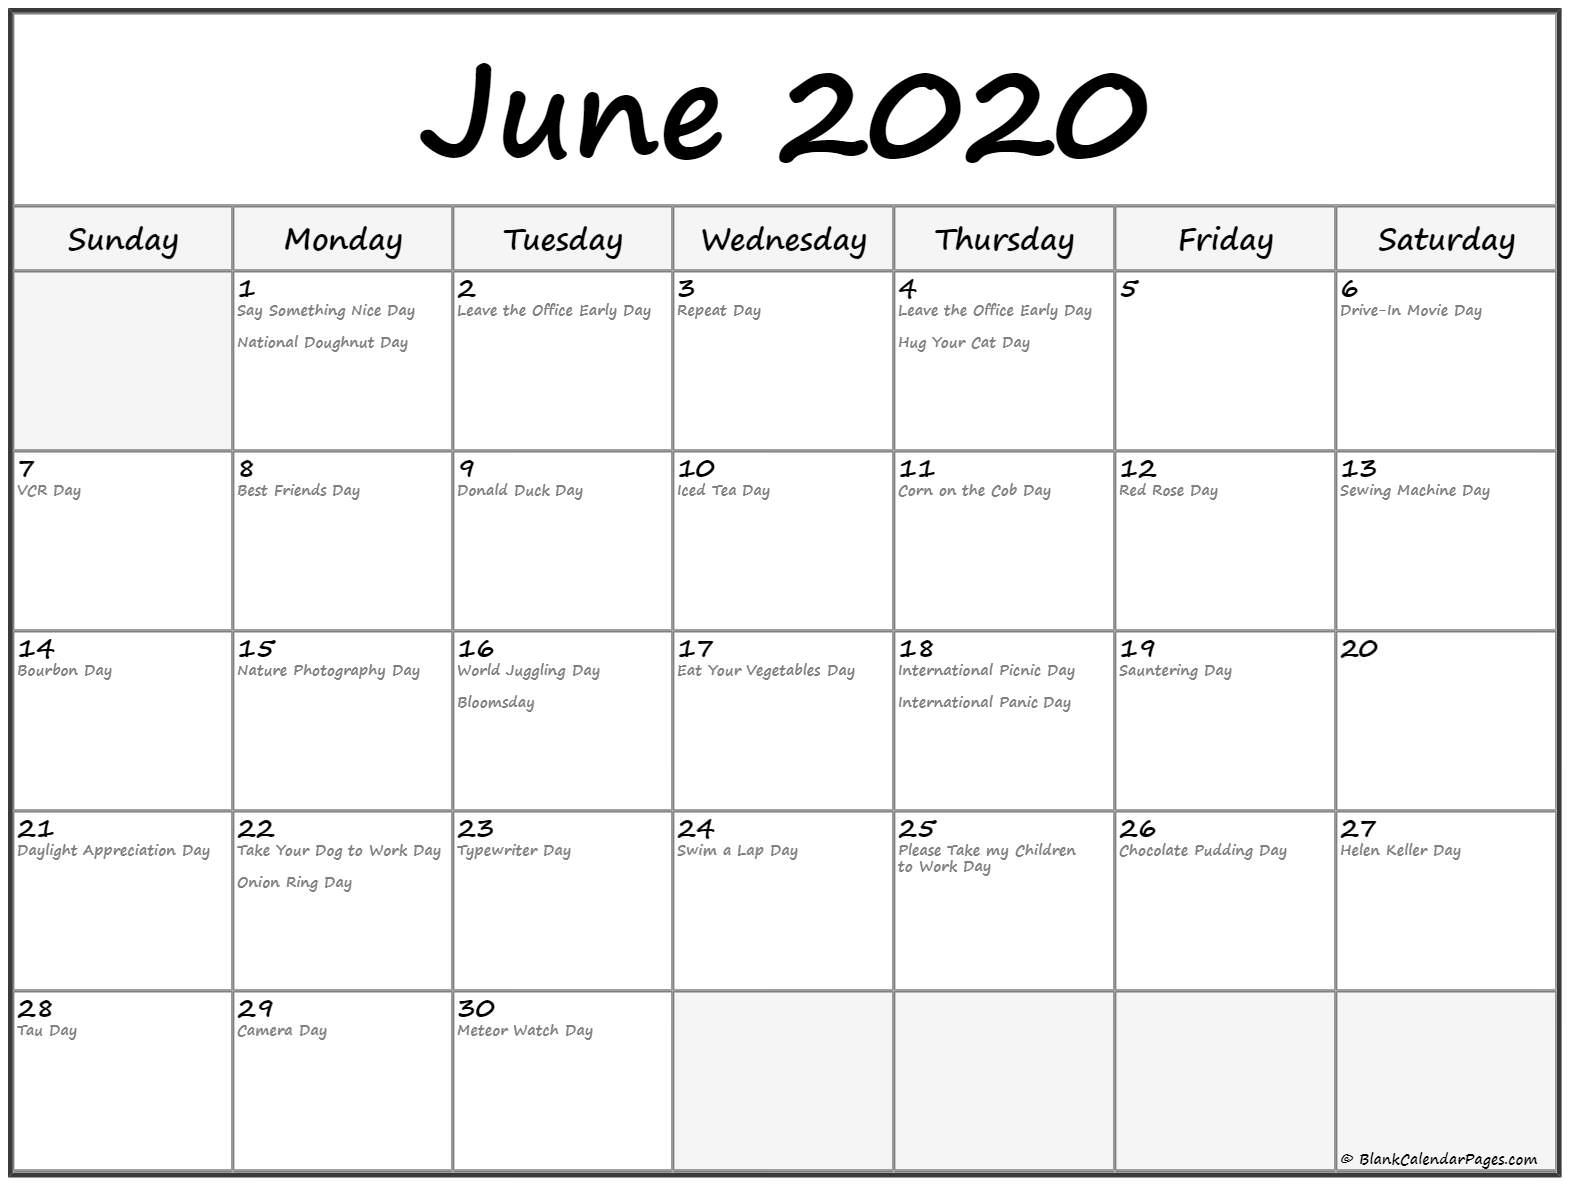 Collection Of June 2020 Calendars With Holidays